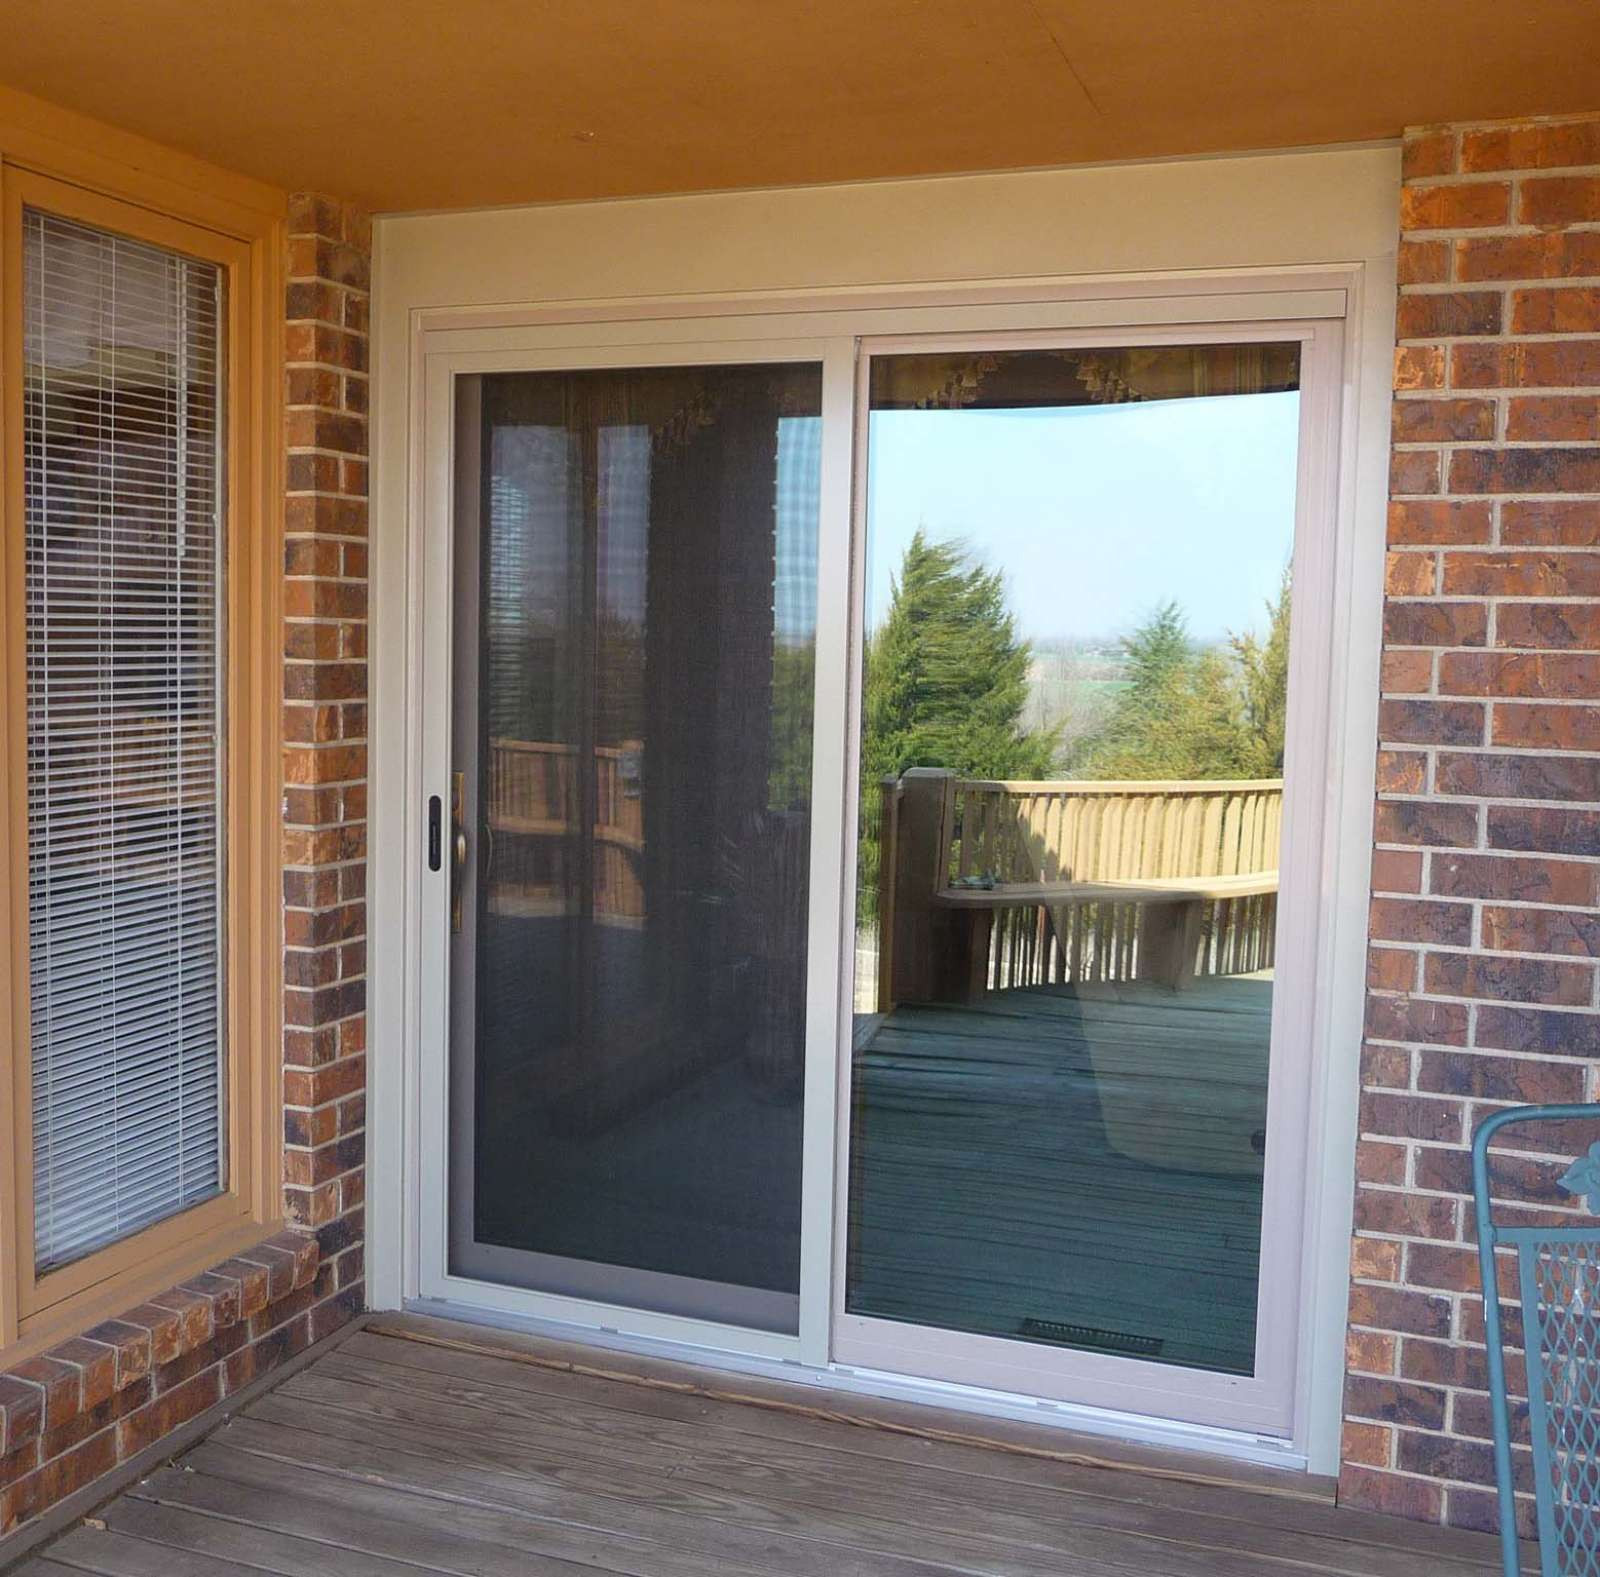 Best ideas about Lowes Sliding Patio Doors . Save or Pin Lowes Sliding Screen Door peytonmeyer Now.